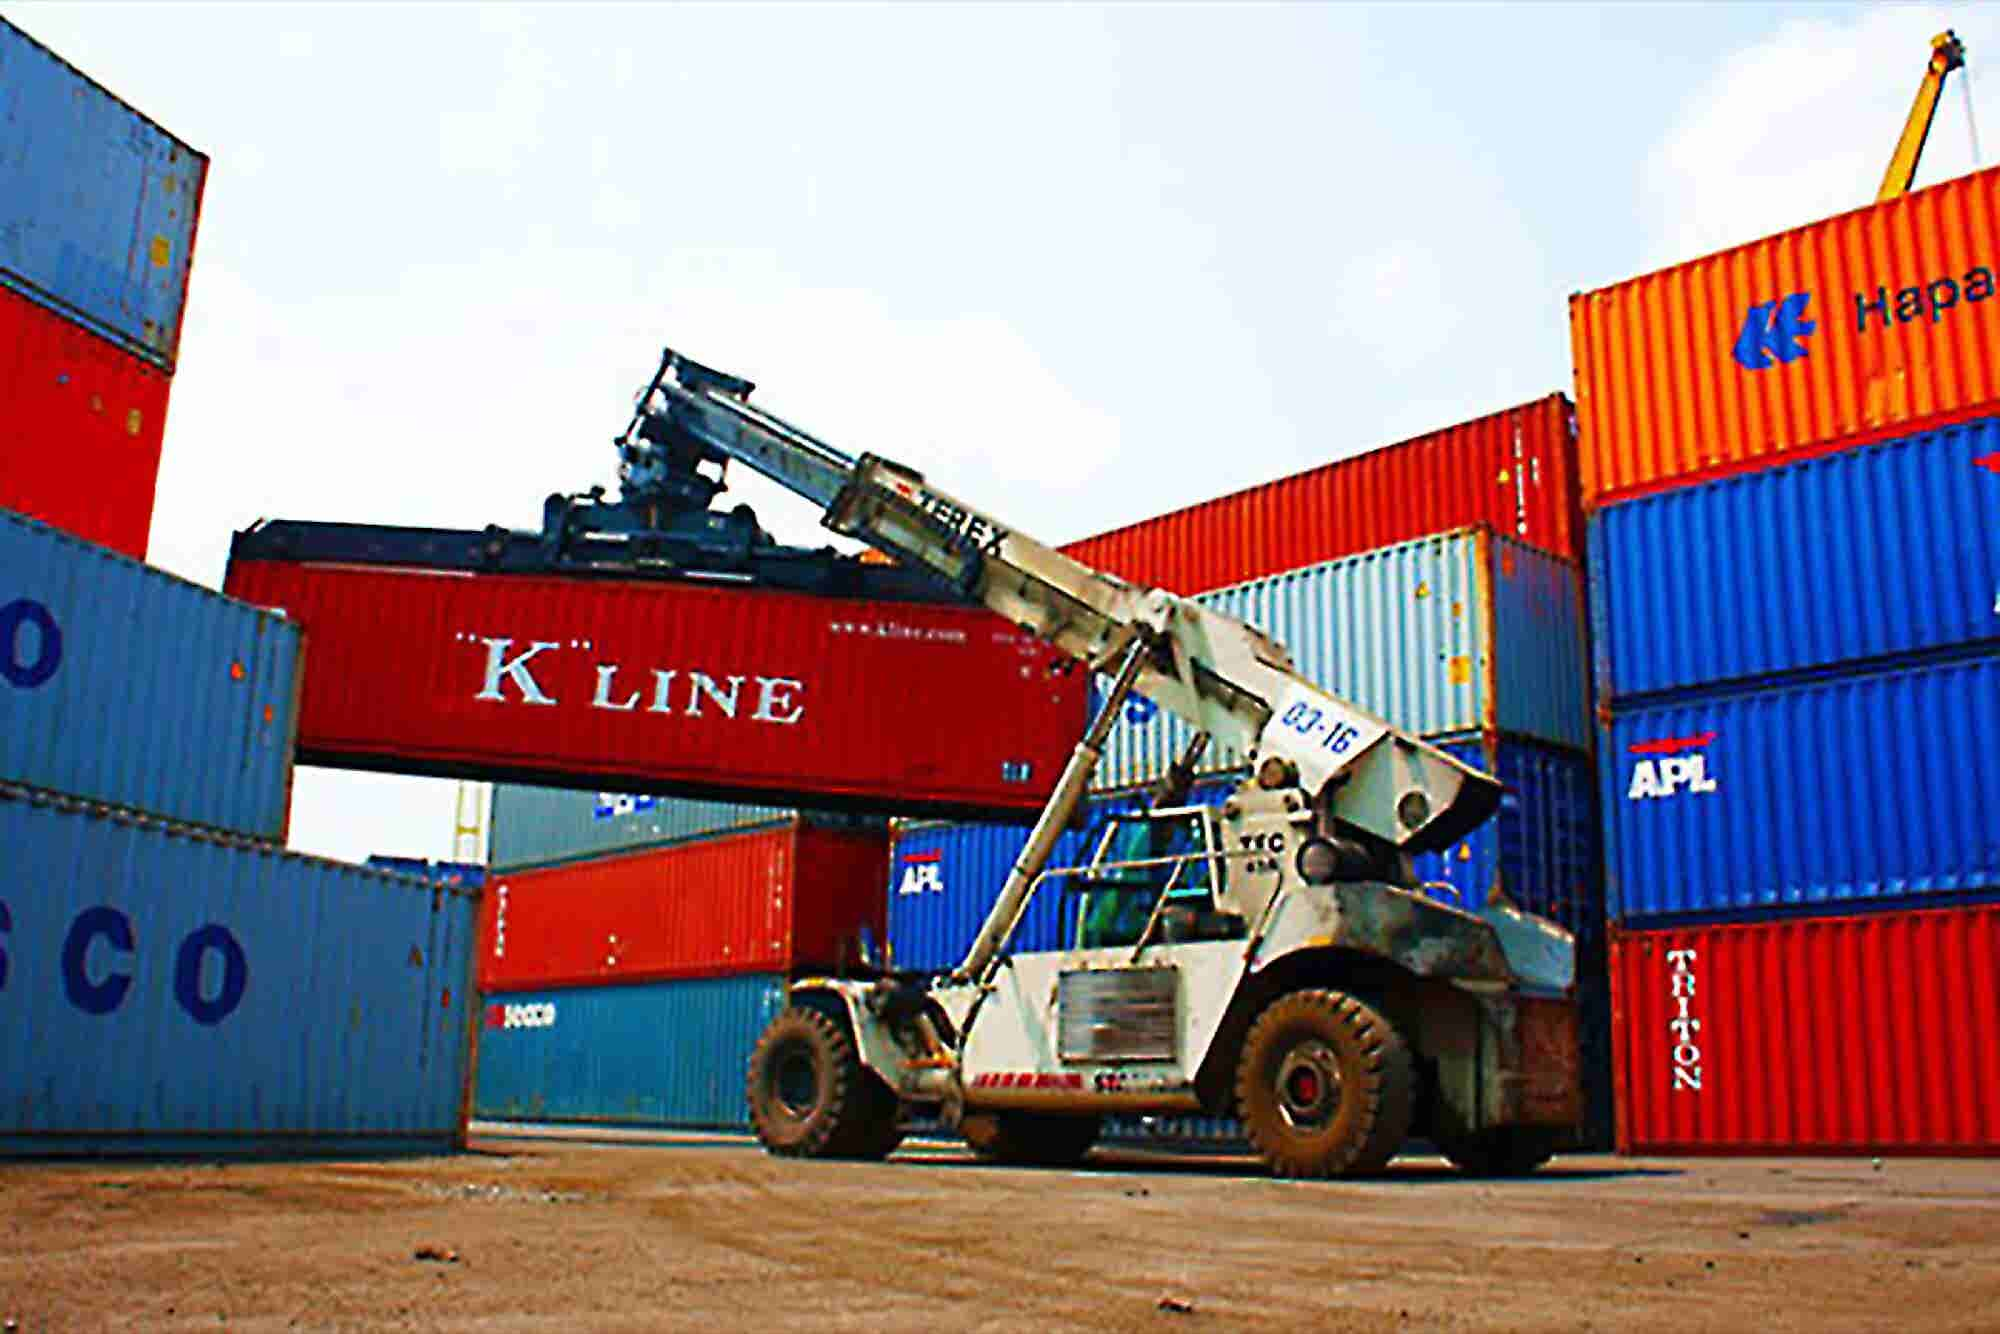 How to Find Products for Your Import Business